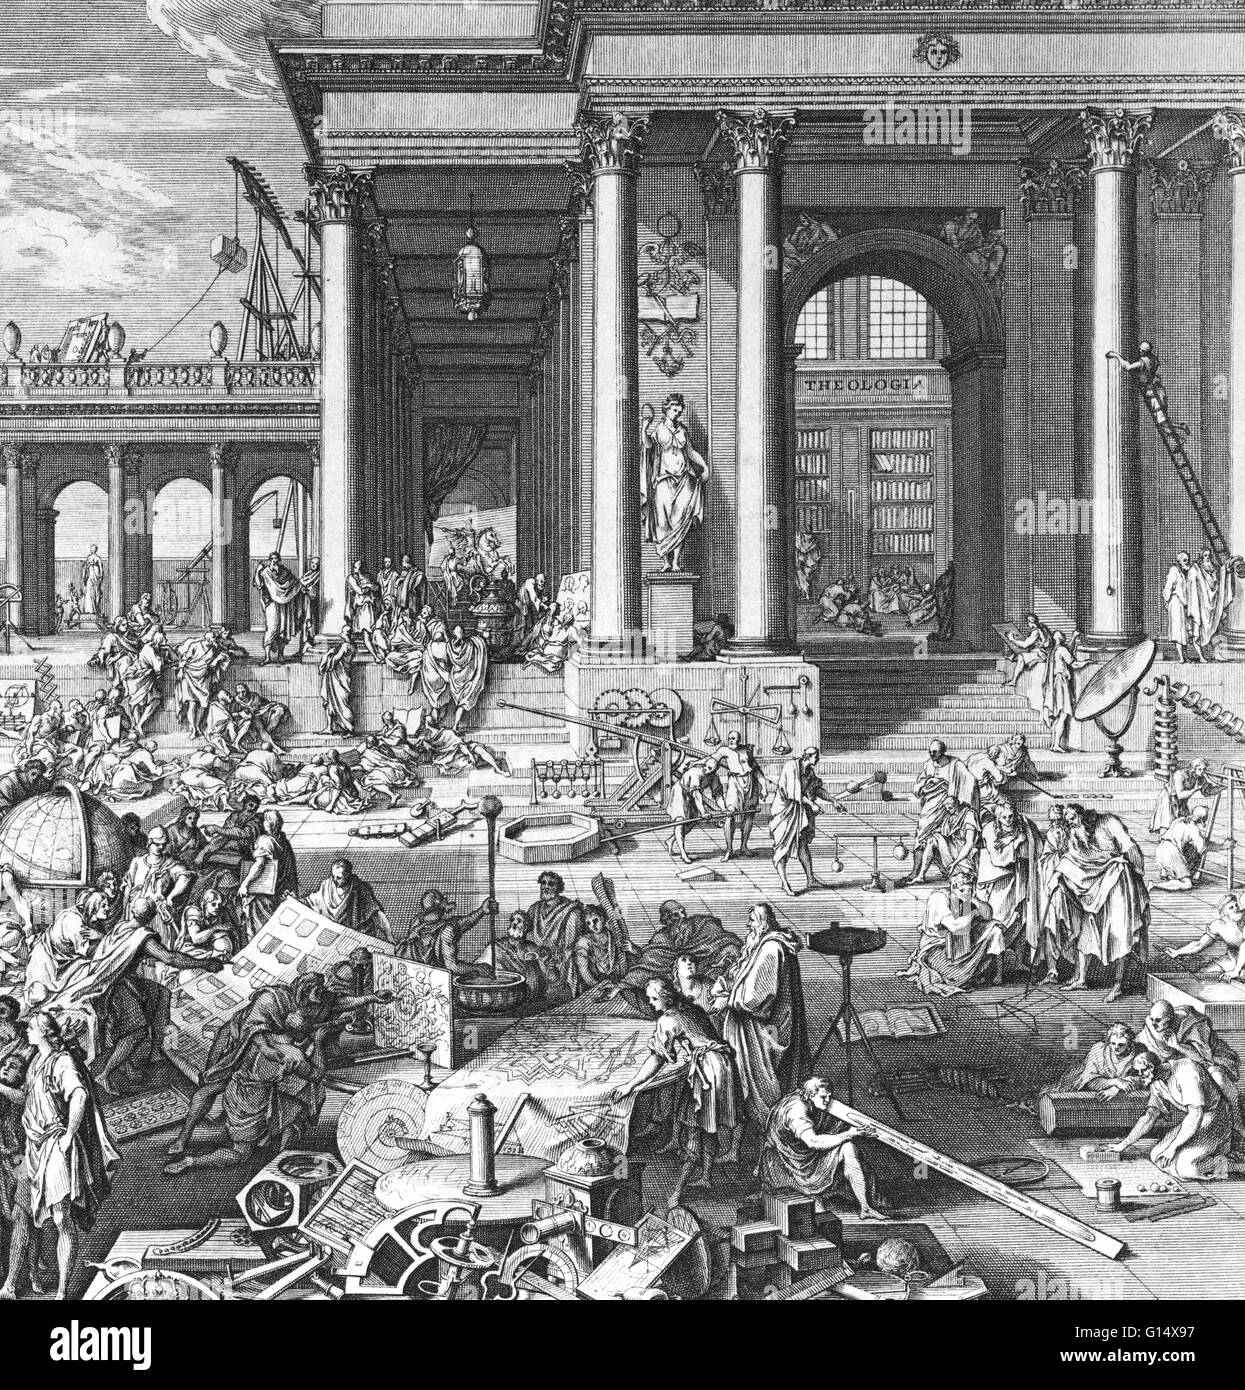 'The Academy of Sciences and Fine Arts.' Engraving by Sebastien LeClerc, 1698. - Stock Image